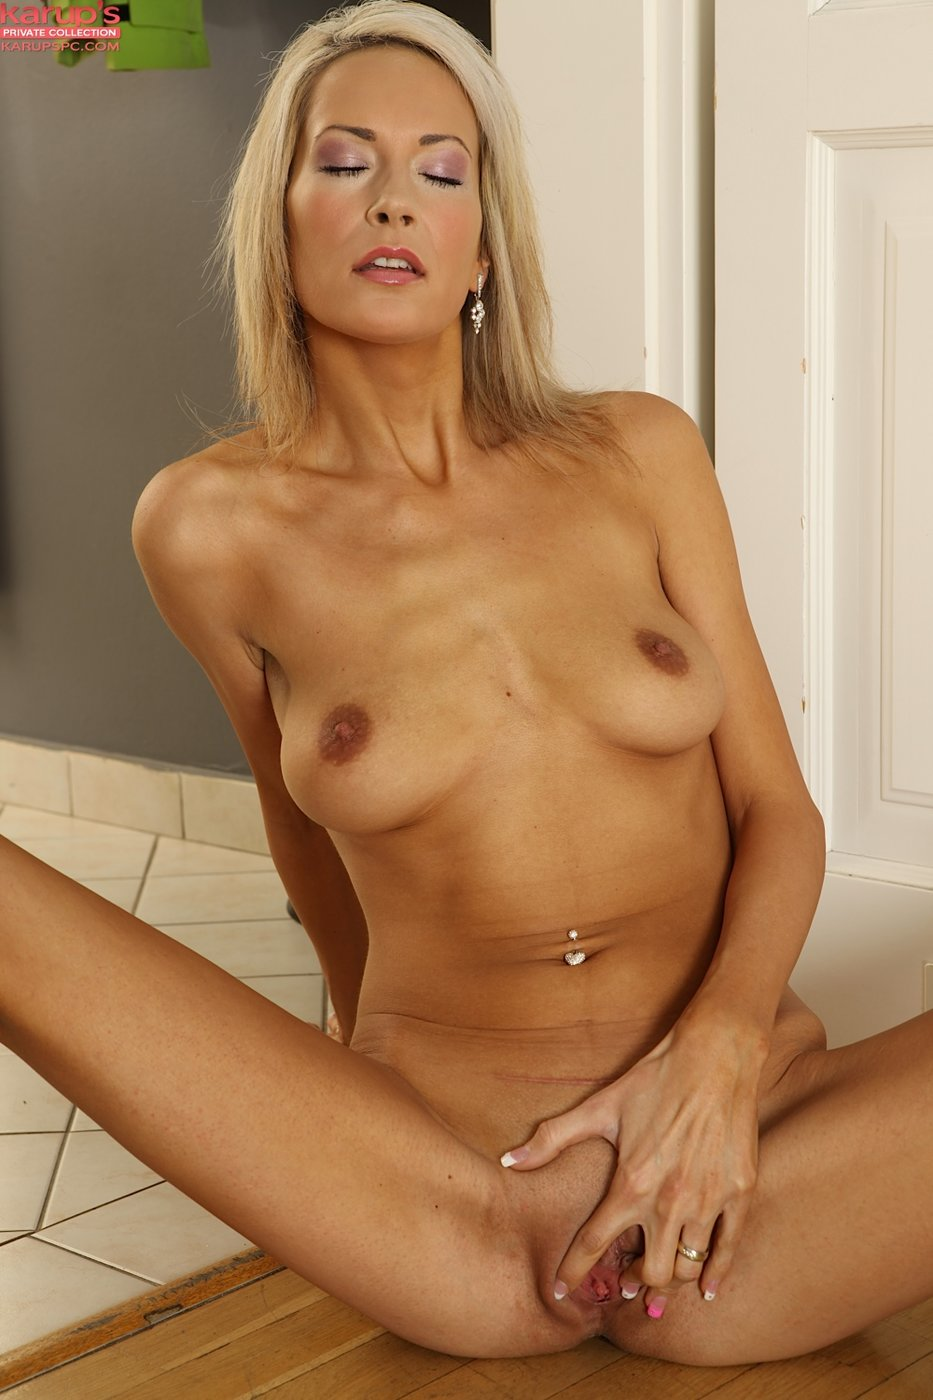 Milf babe decides to offer her best on first date 2